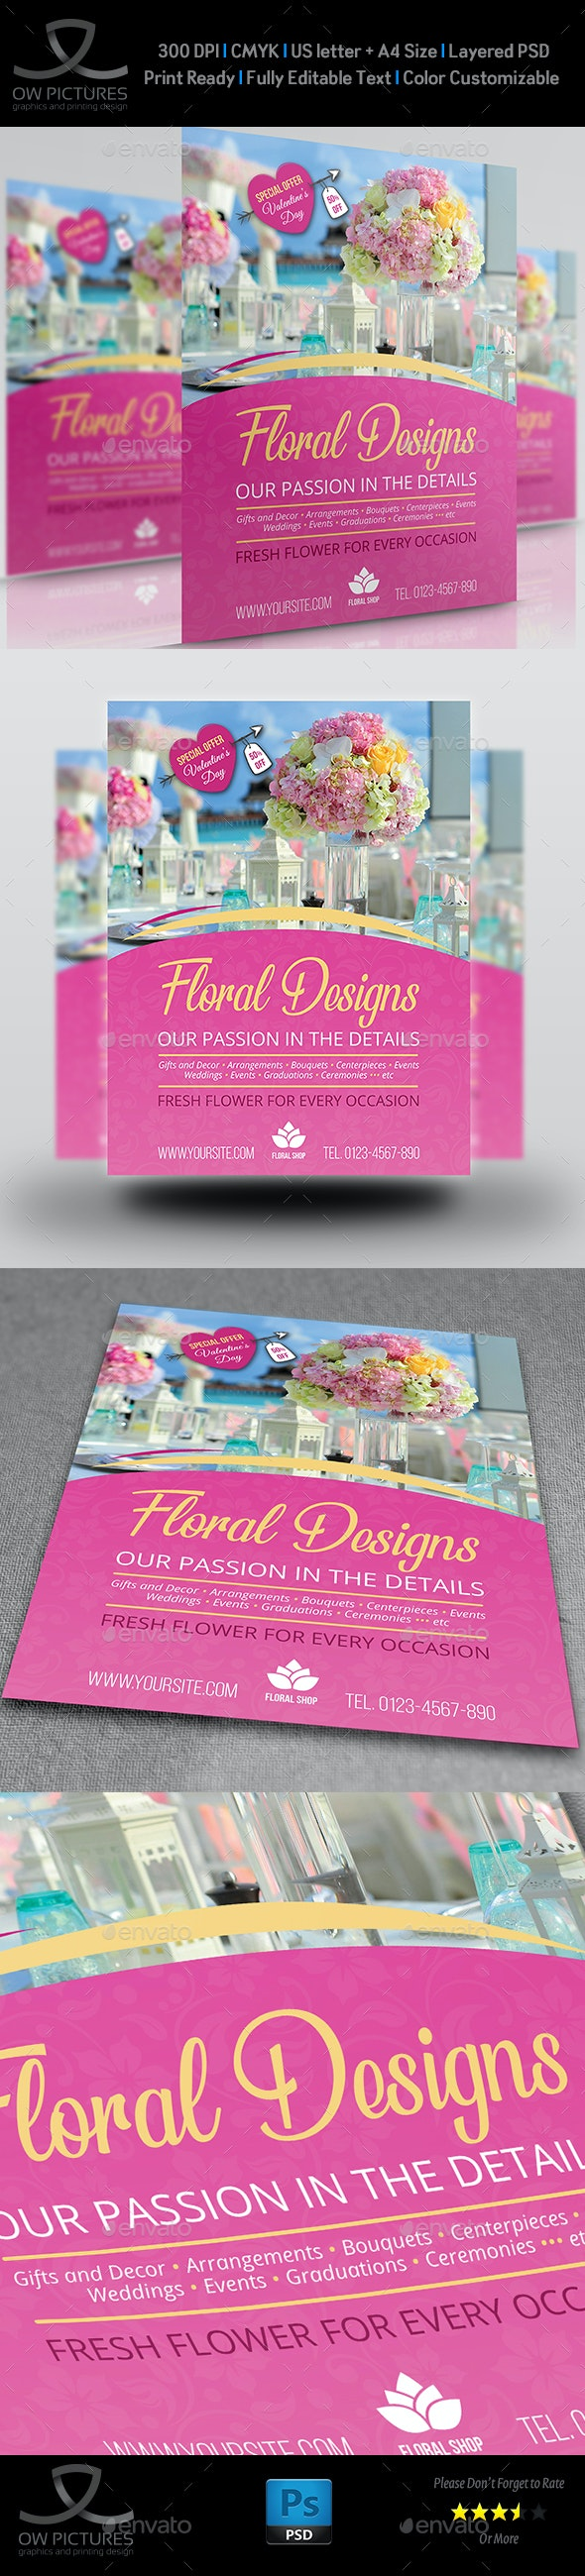 Floral Designs Flyer Template - Flyers Print Templates